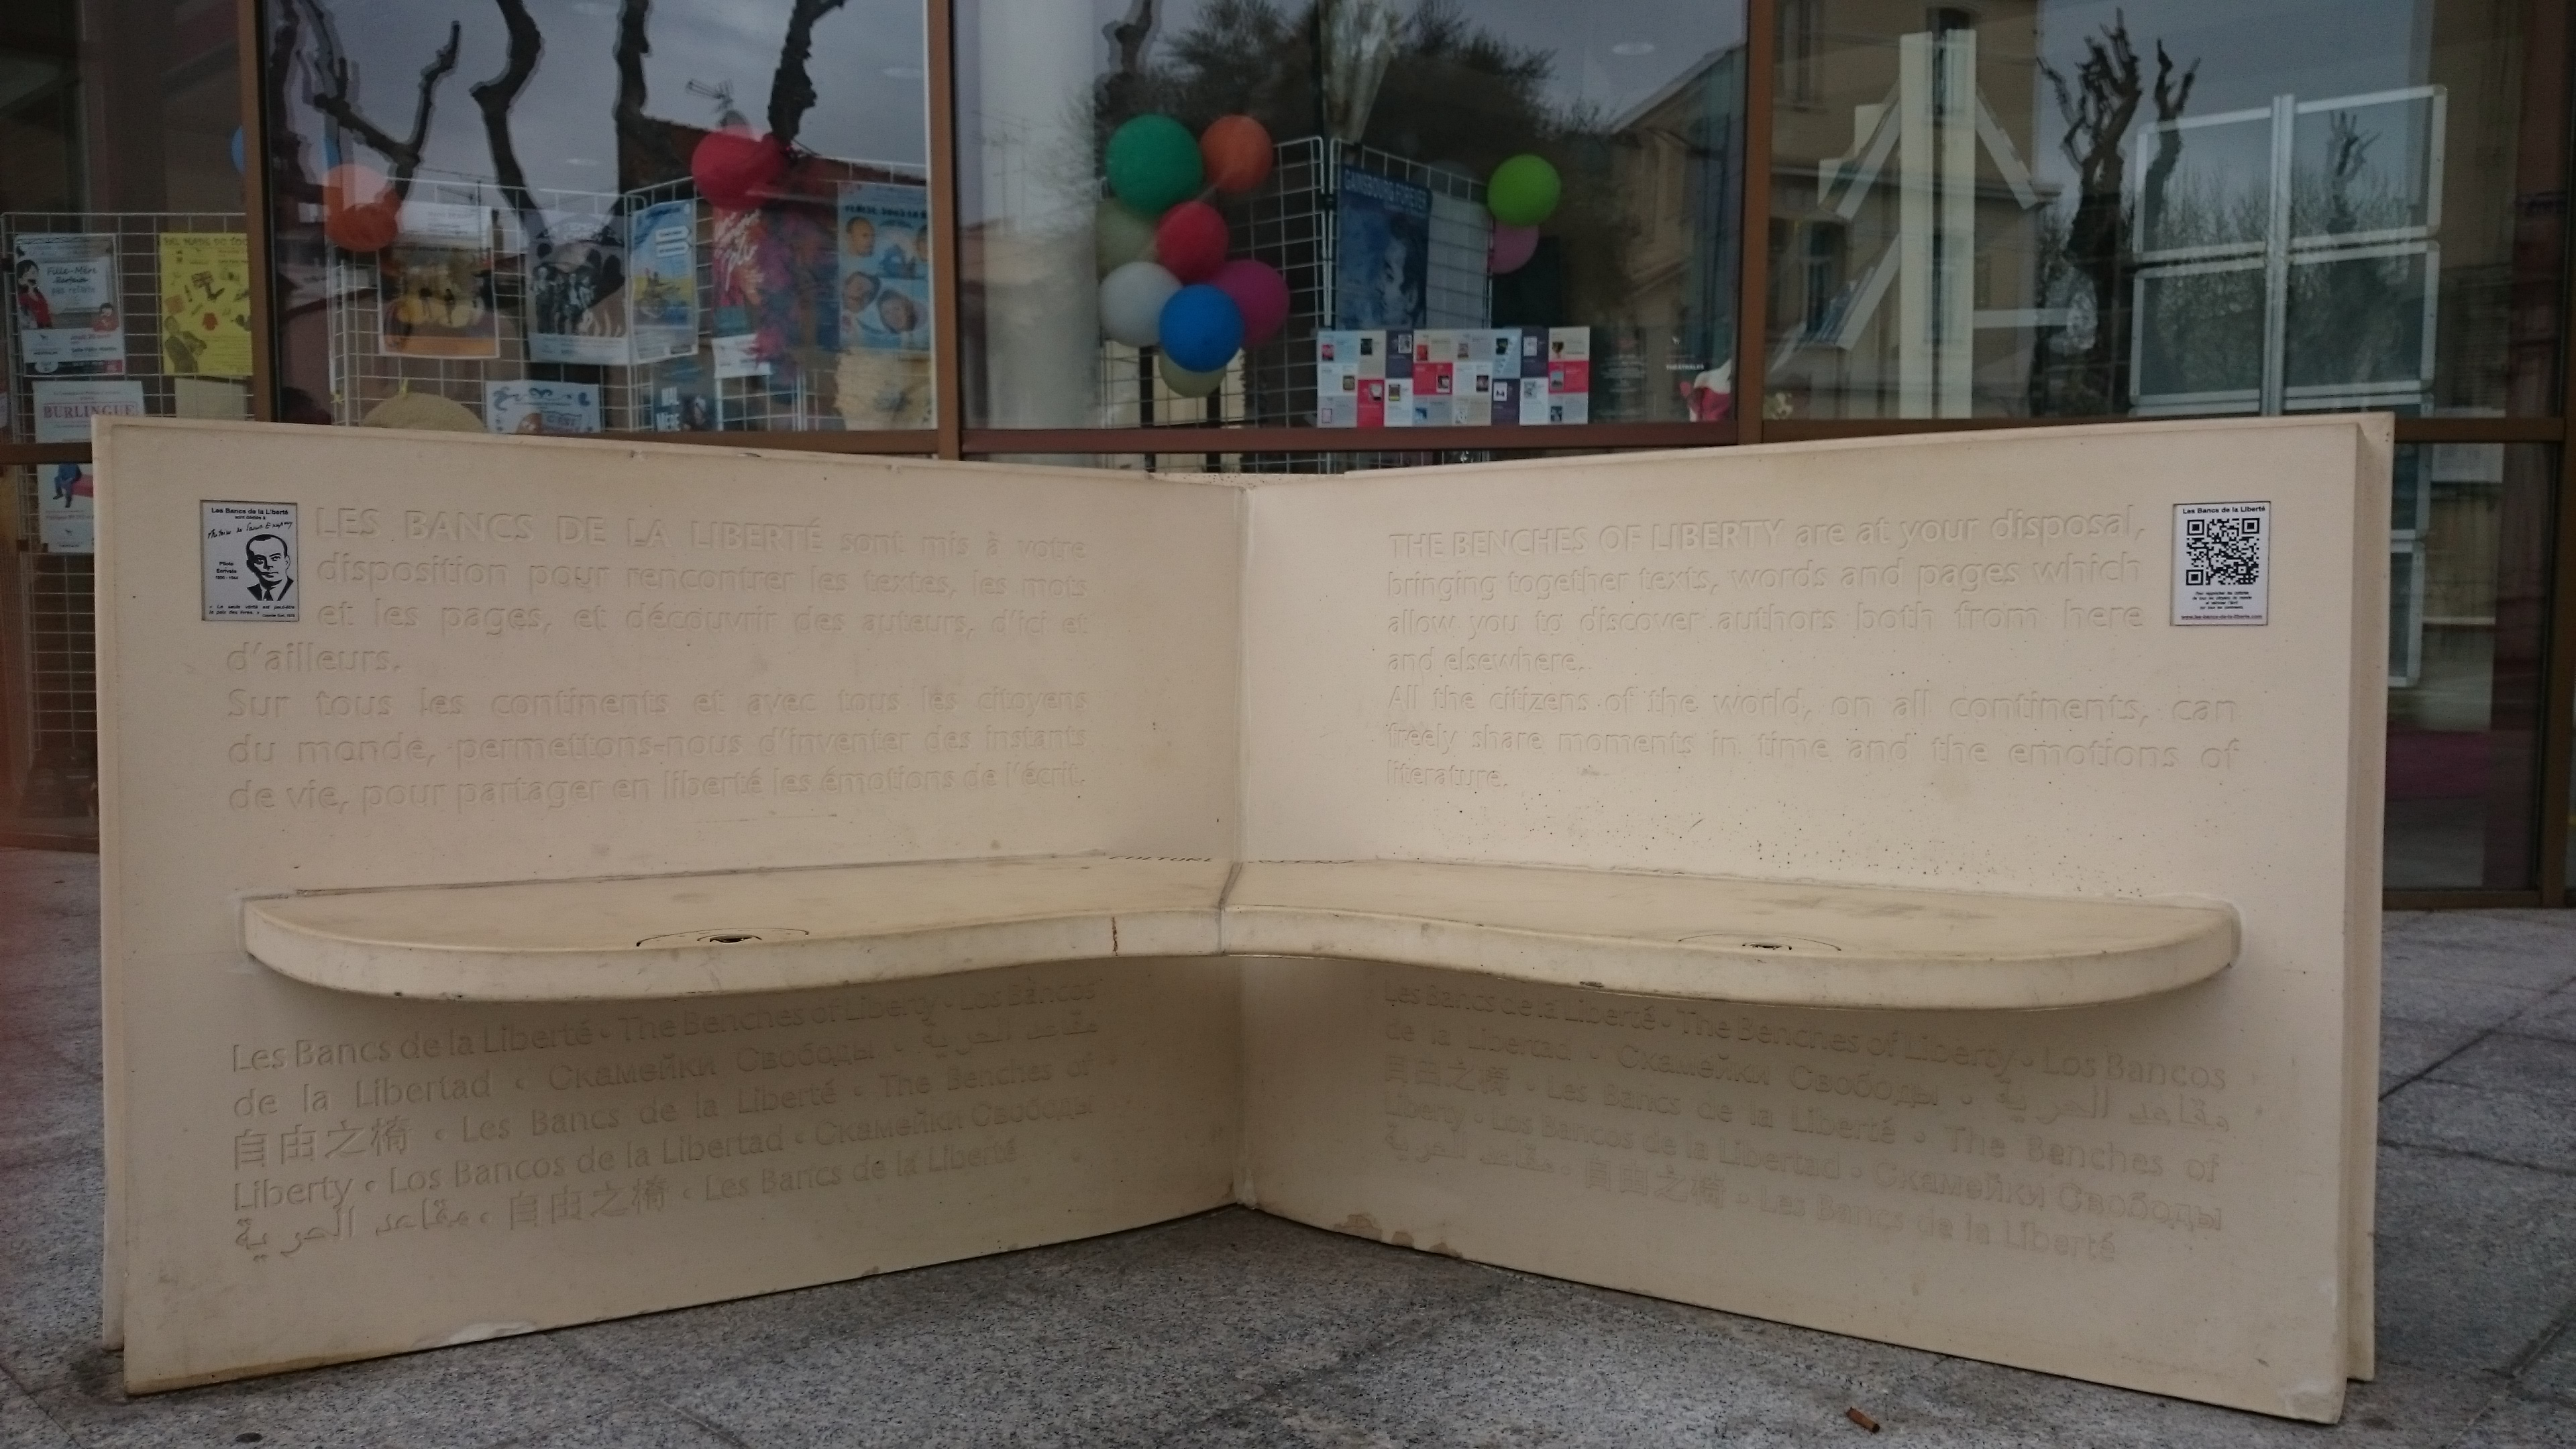 In April, I was on the French Riviera and came across these Bancs de la  liberté. (Benches of Liberty)